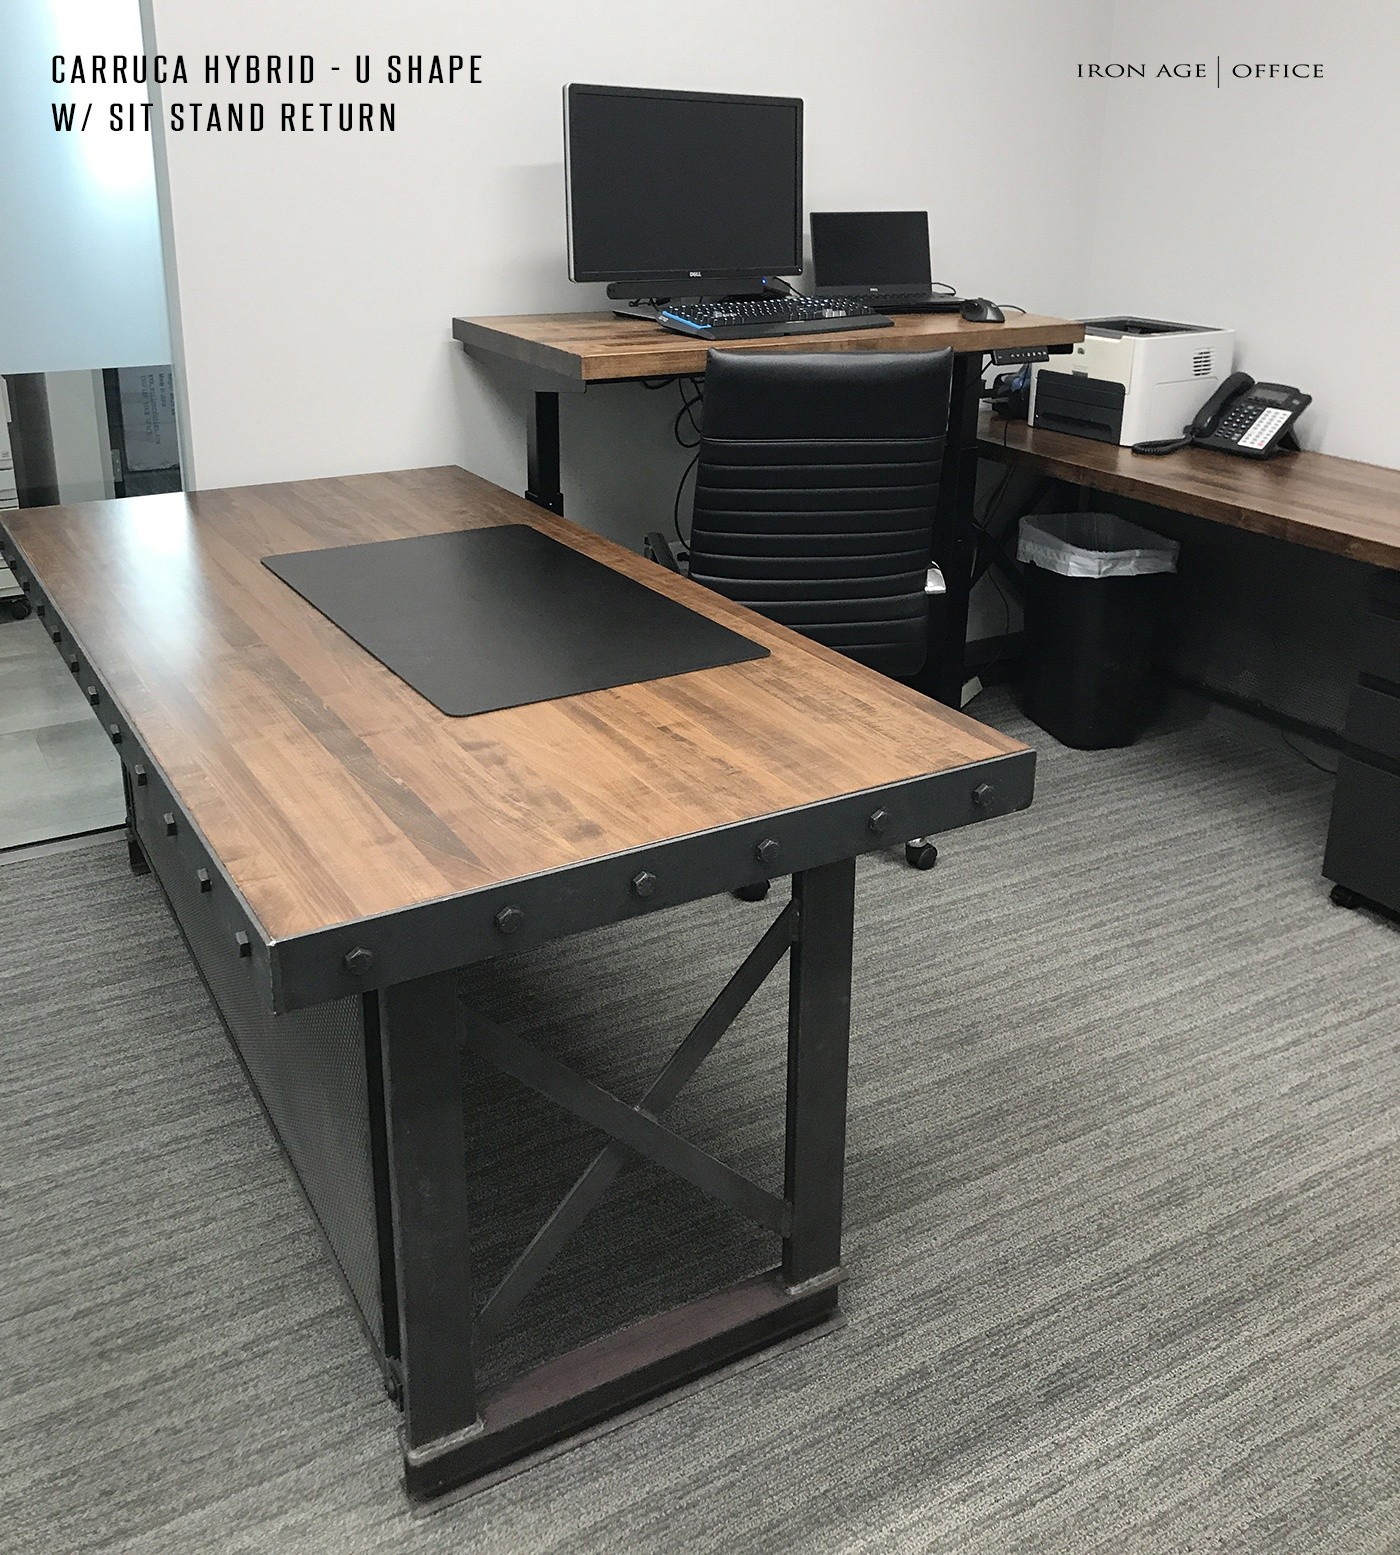 Carruca desk office Ironageoffice While These Were Some Of The Tips And Tricks For Buying The Right Custom Furniture Quora What Do People Look For In Office Furniture Quora